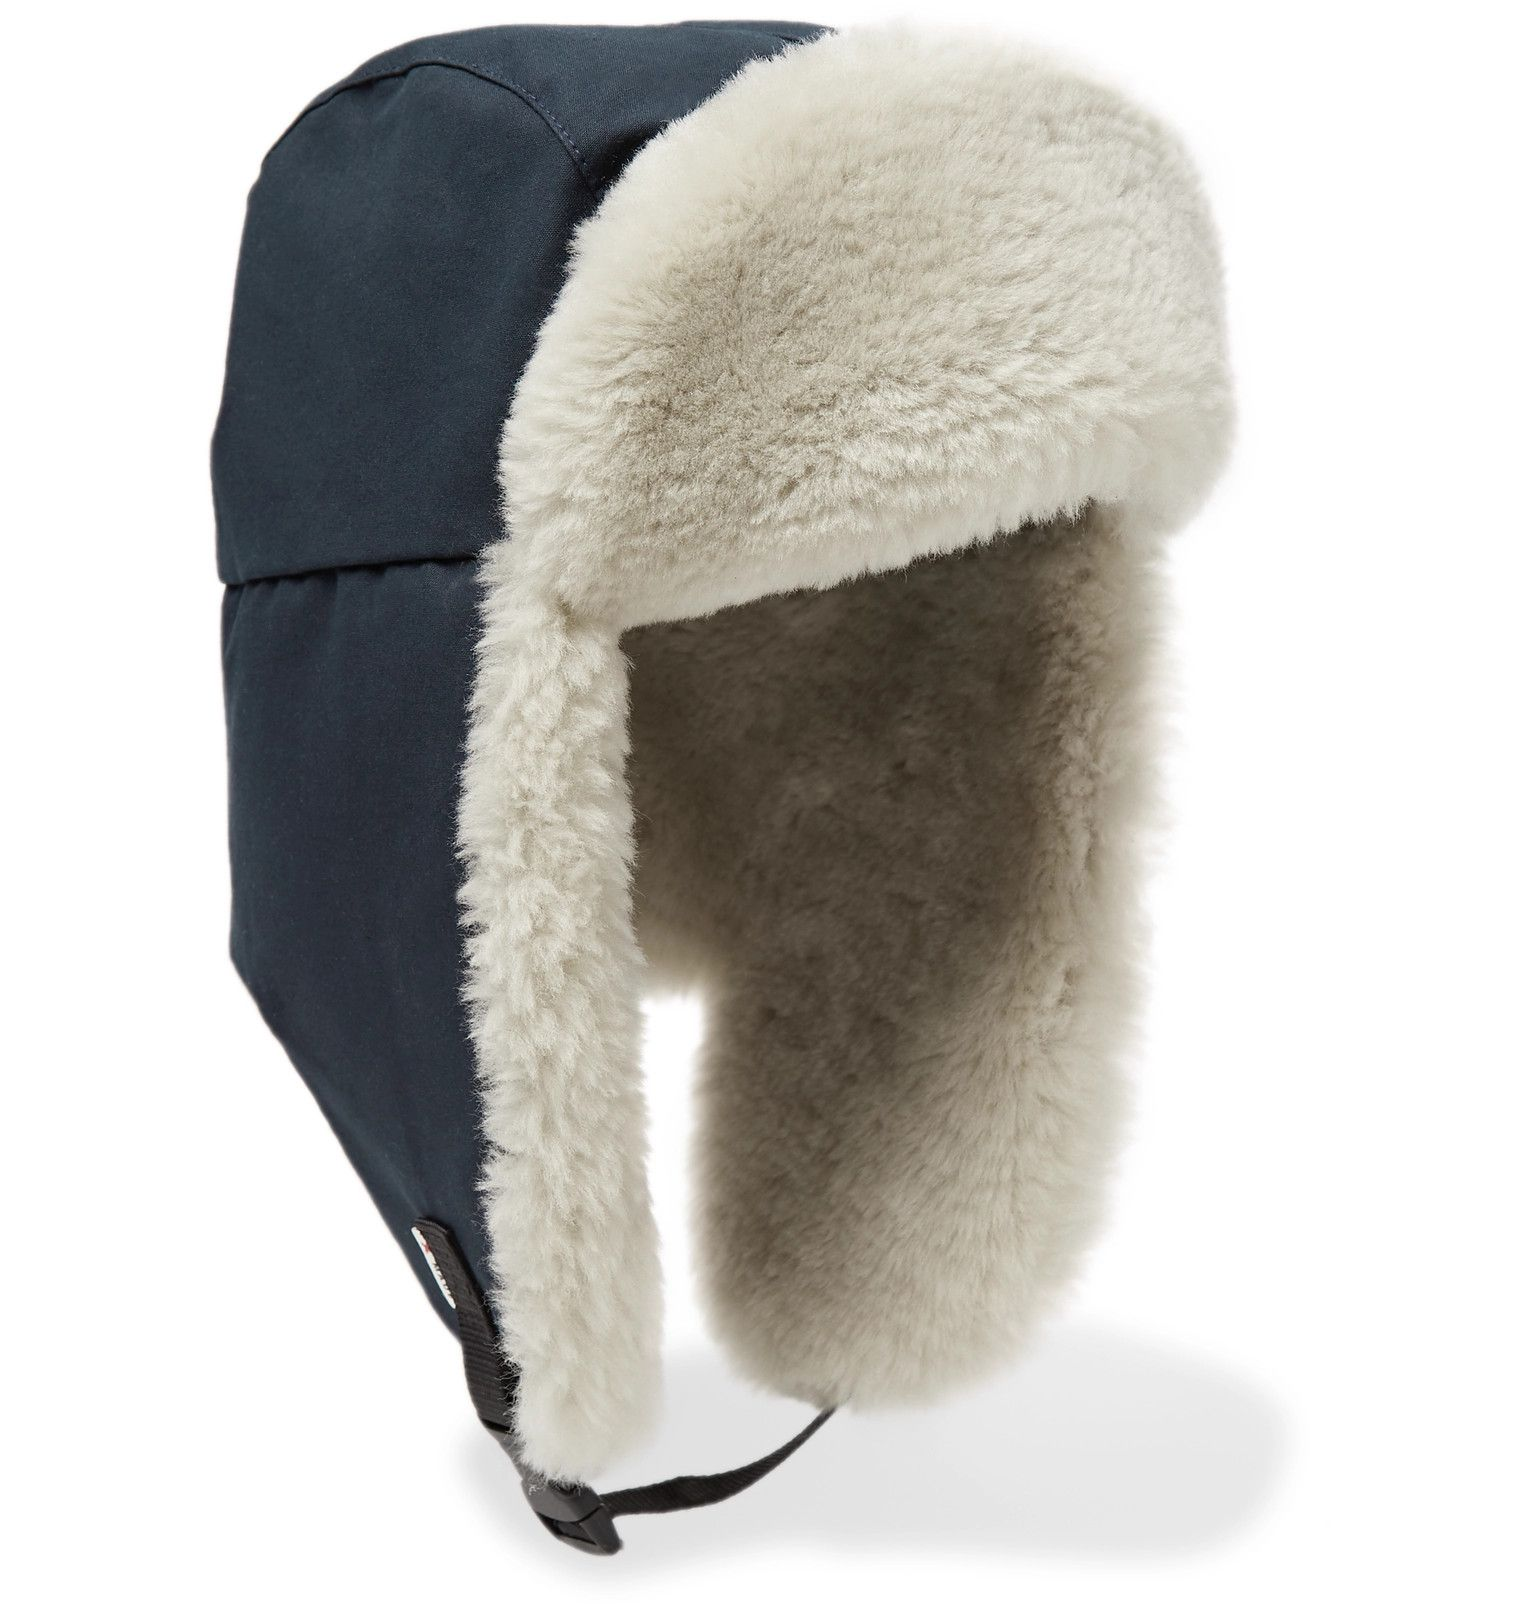 0abf97ca8ad87 Best Made Company - RCMP Cotton-Ventile and Shearling Trapper Hat ...